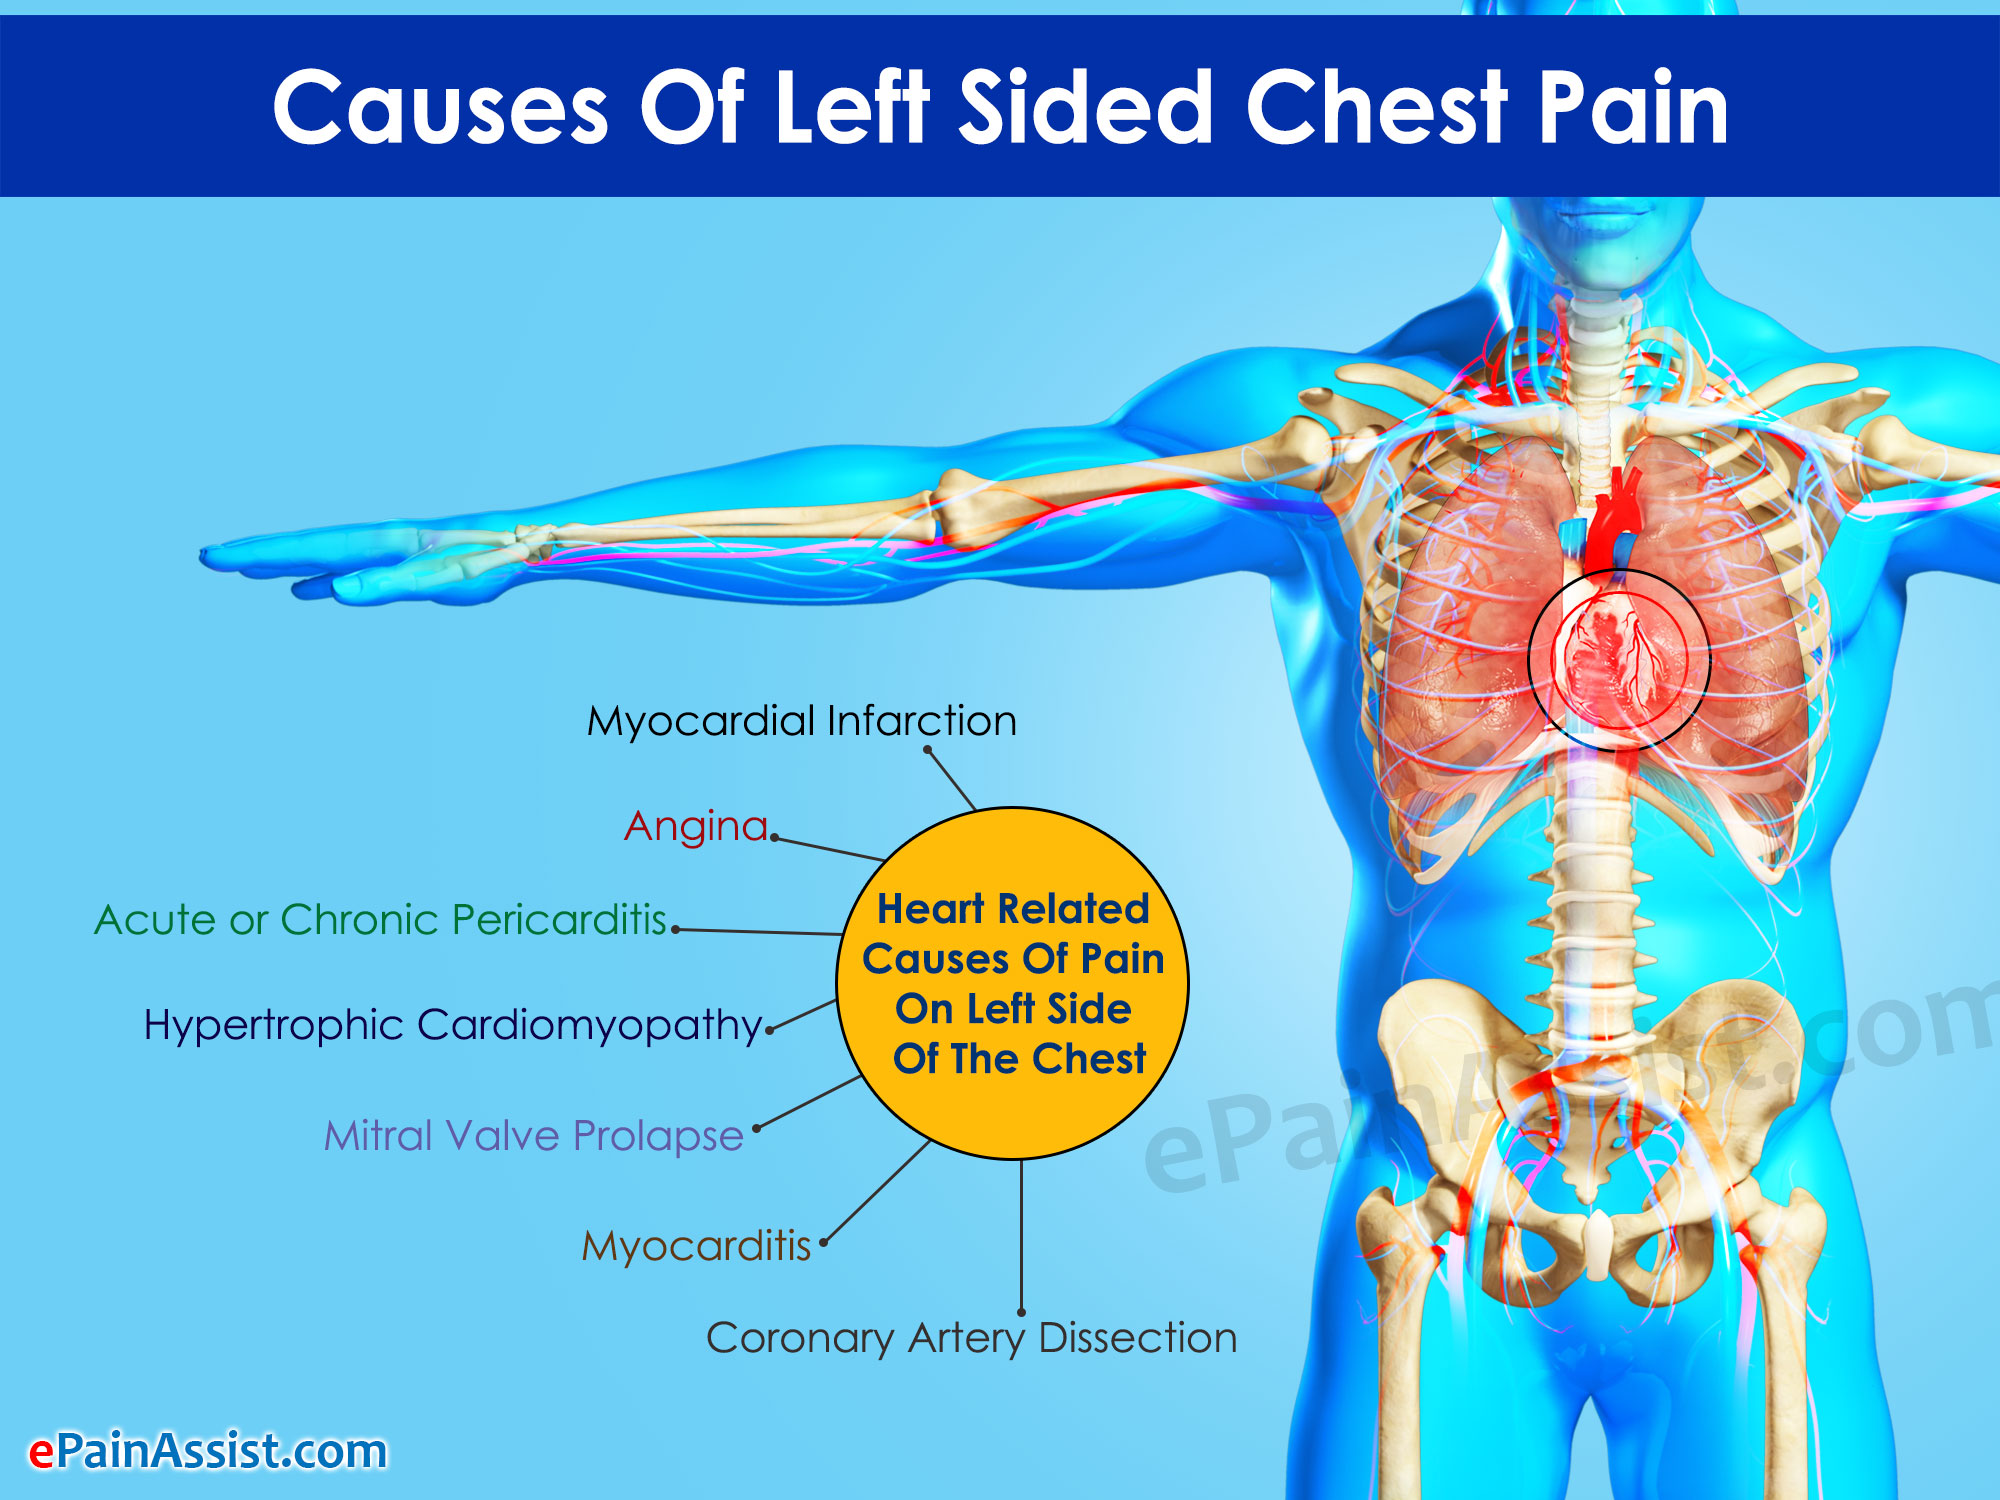 Causes Of Left Sided Chest Pain